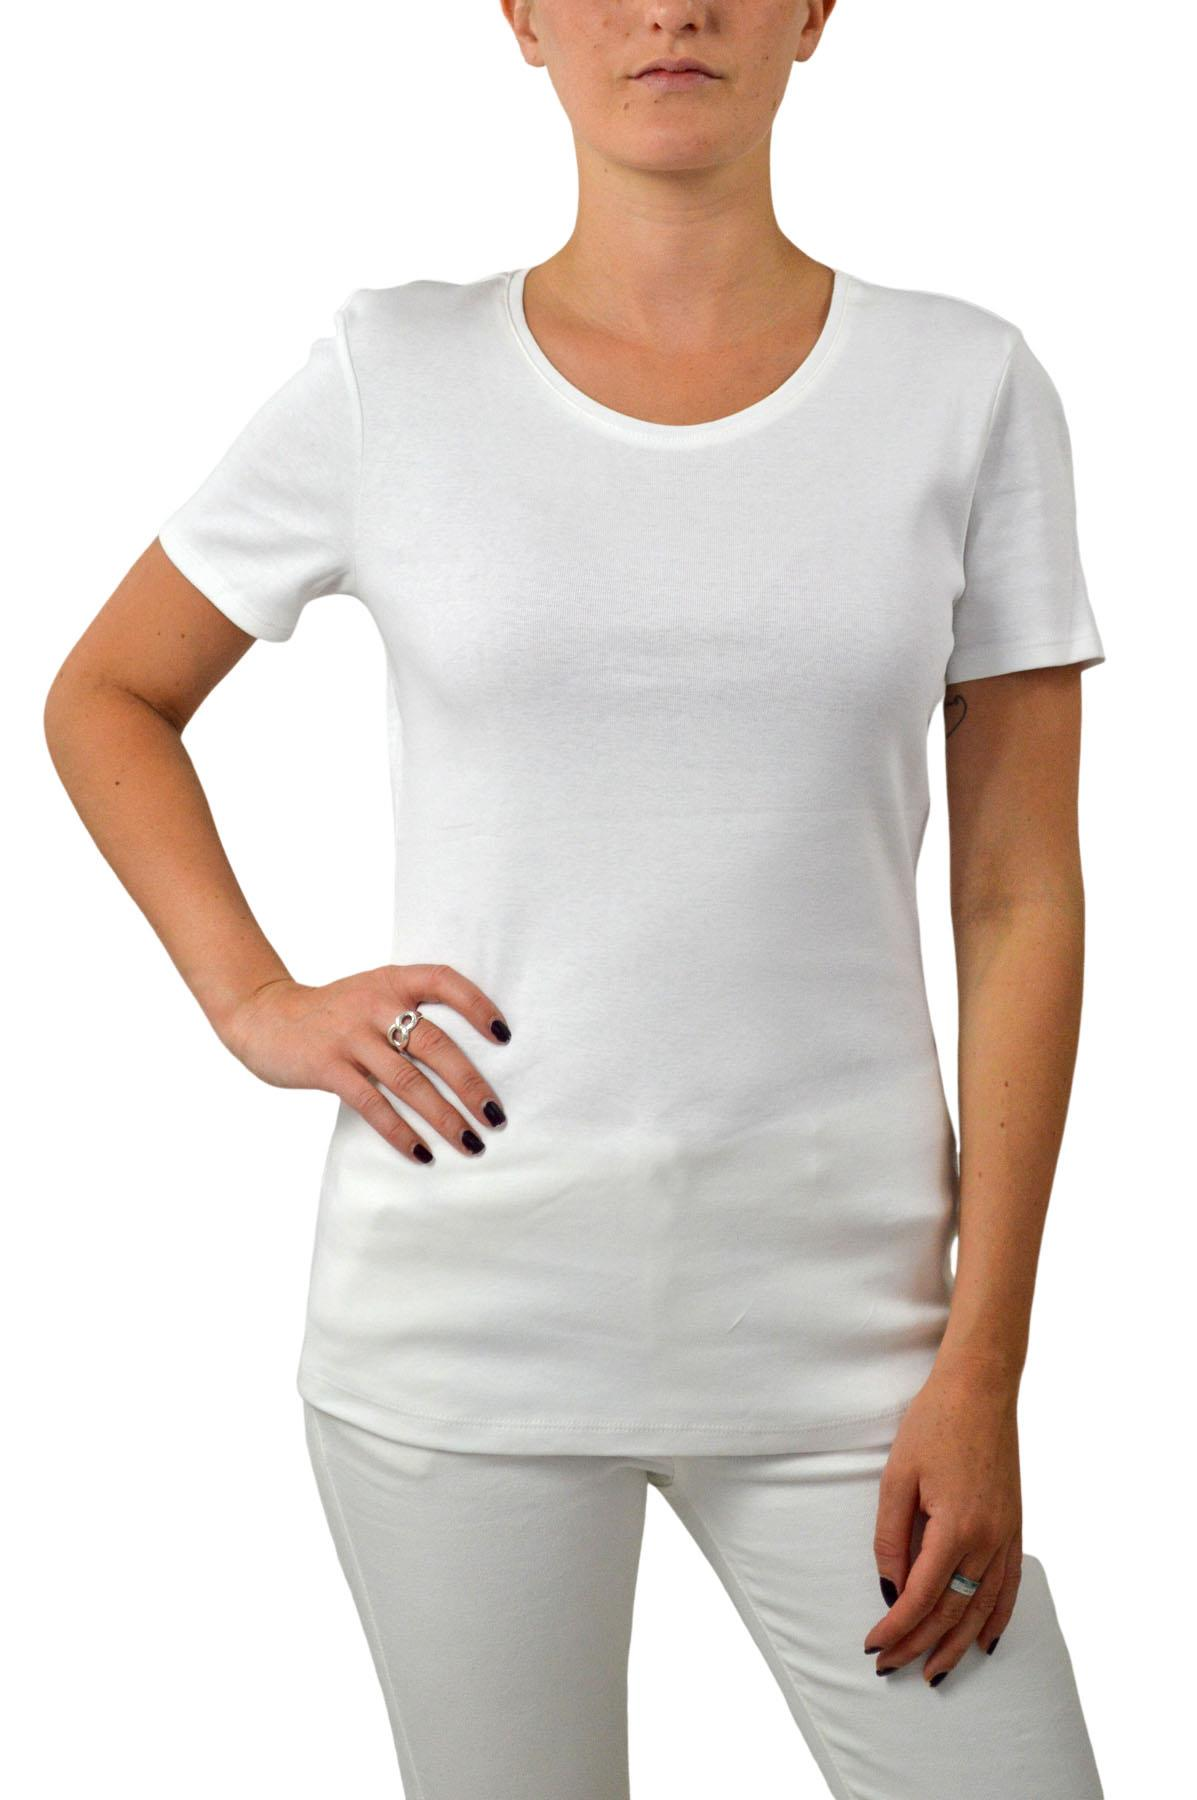 M-amp-S-Ladies-Short-Sleeve-Cotton-T-Shirt-Slim-Fit-Curved-Hem-Size-4-to-24 thumbnail 24